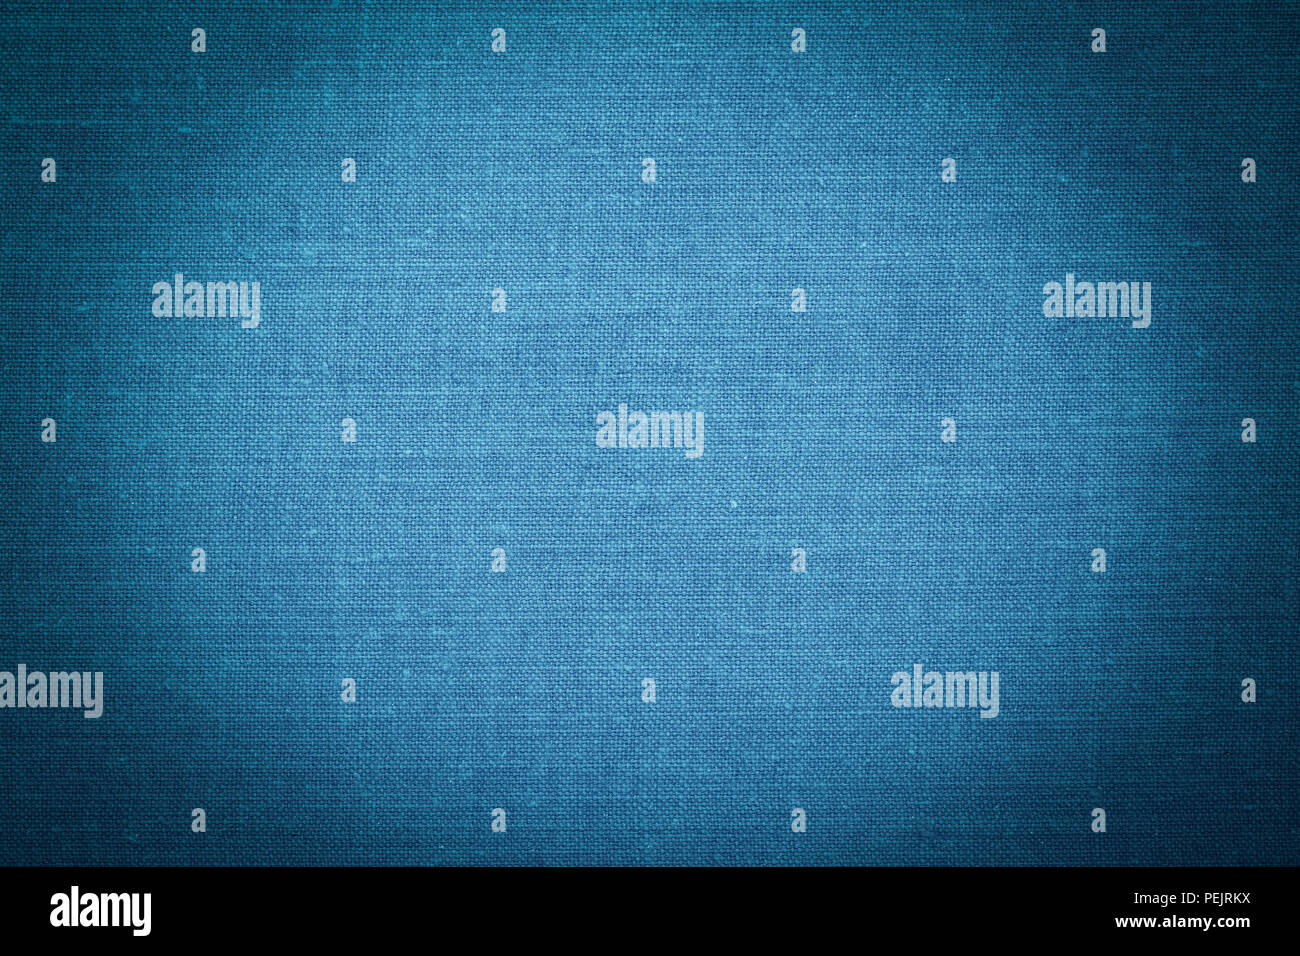 blue grunge background.html